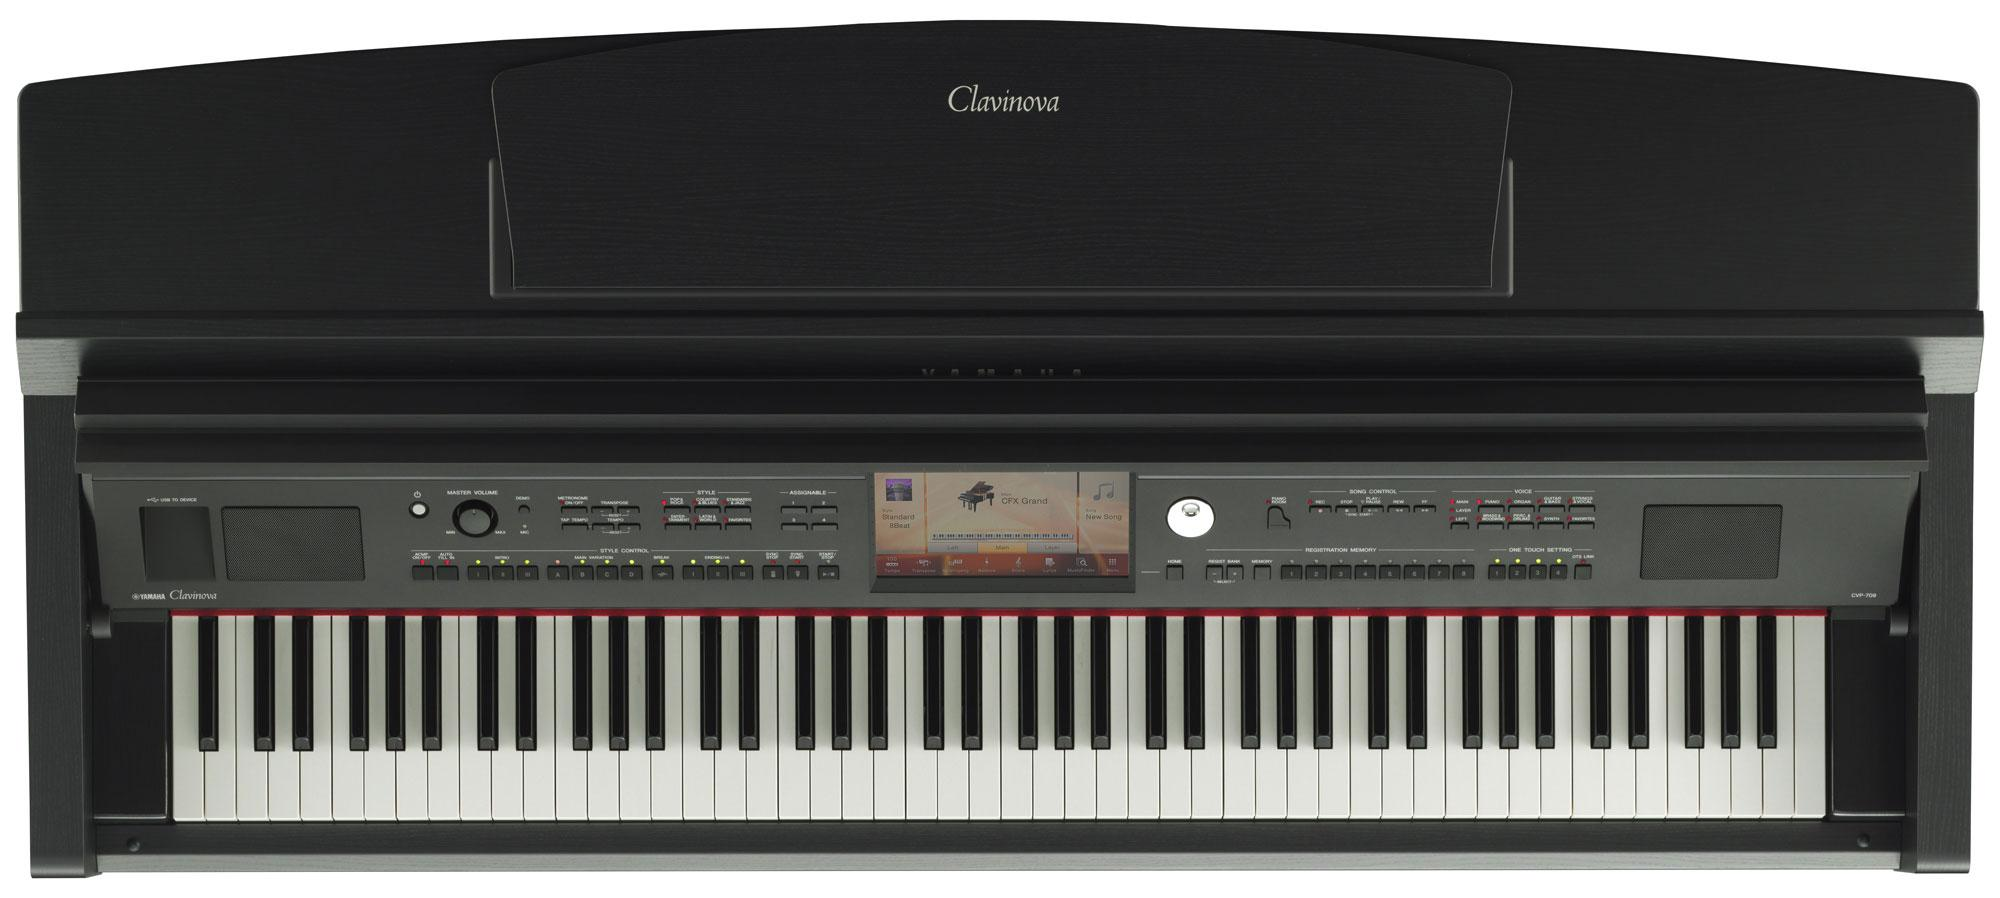 yamaha cvp 709 pe clavinova digitalpiano schwarz hochglanz. Black Bedroom Furniture Sets. Home Design Ideas